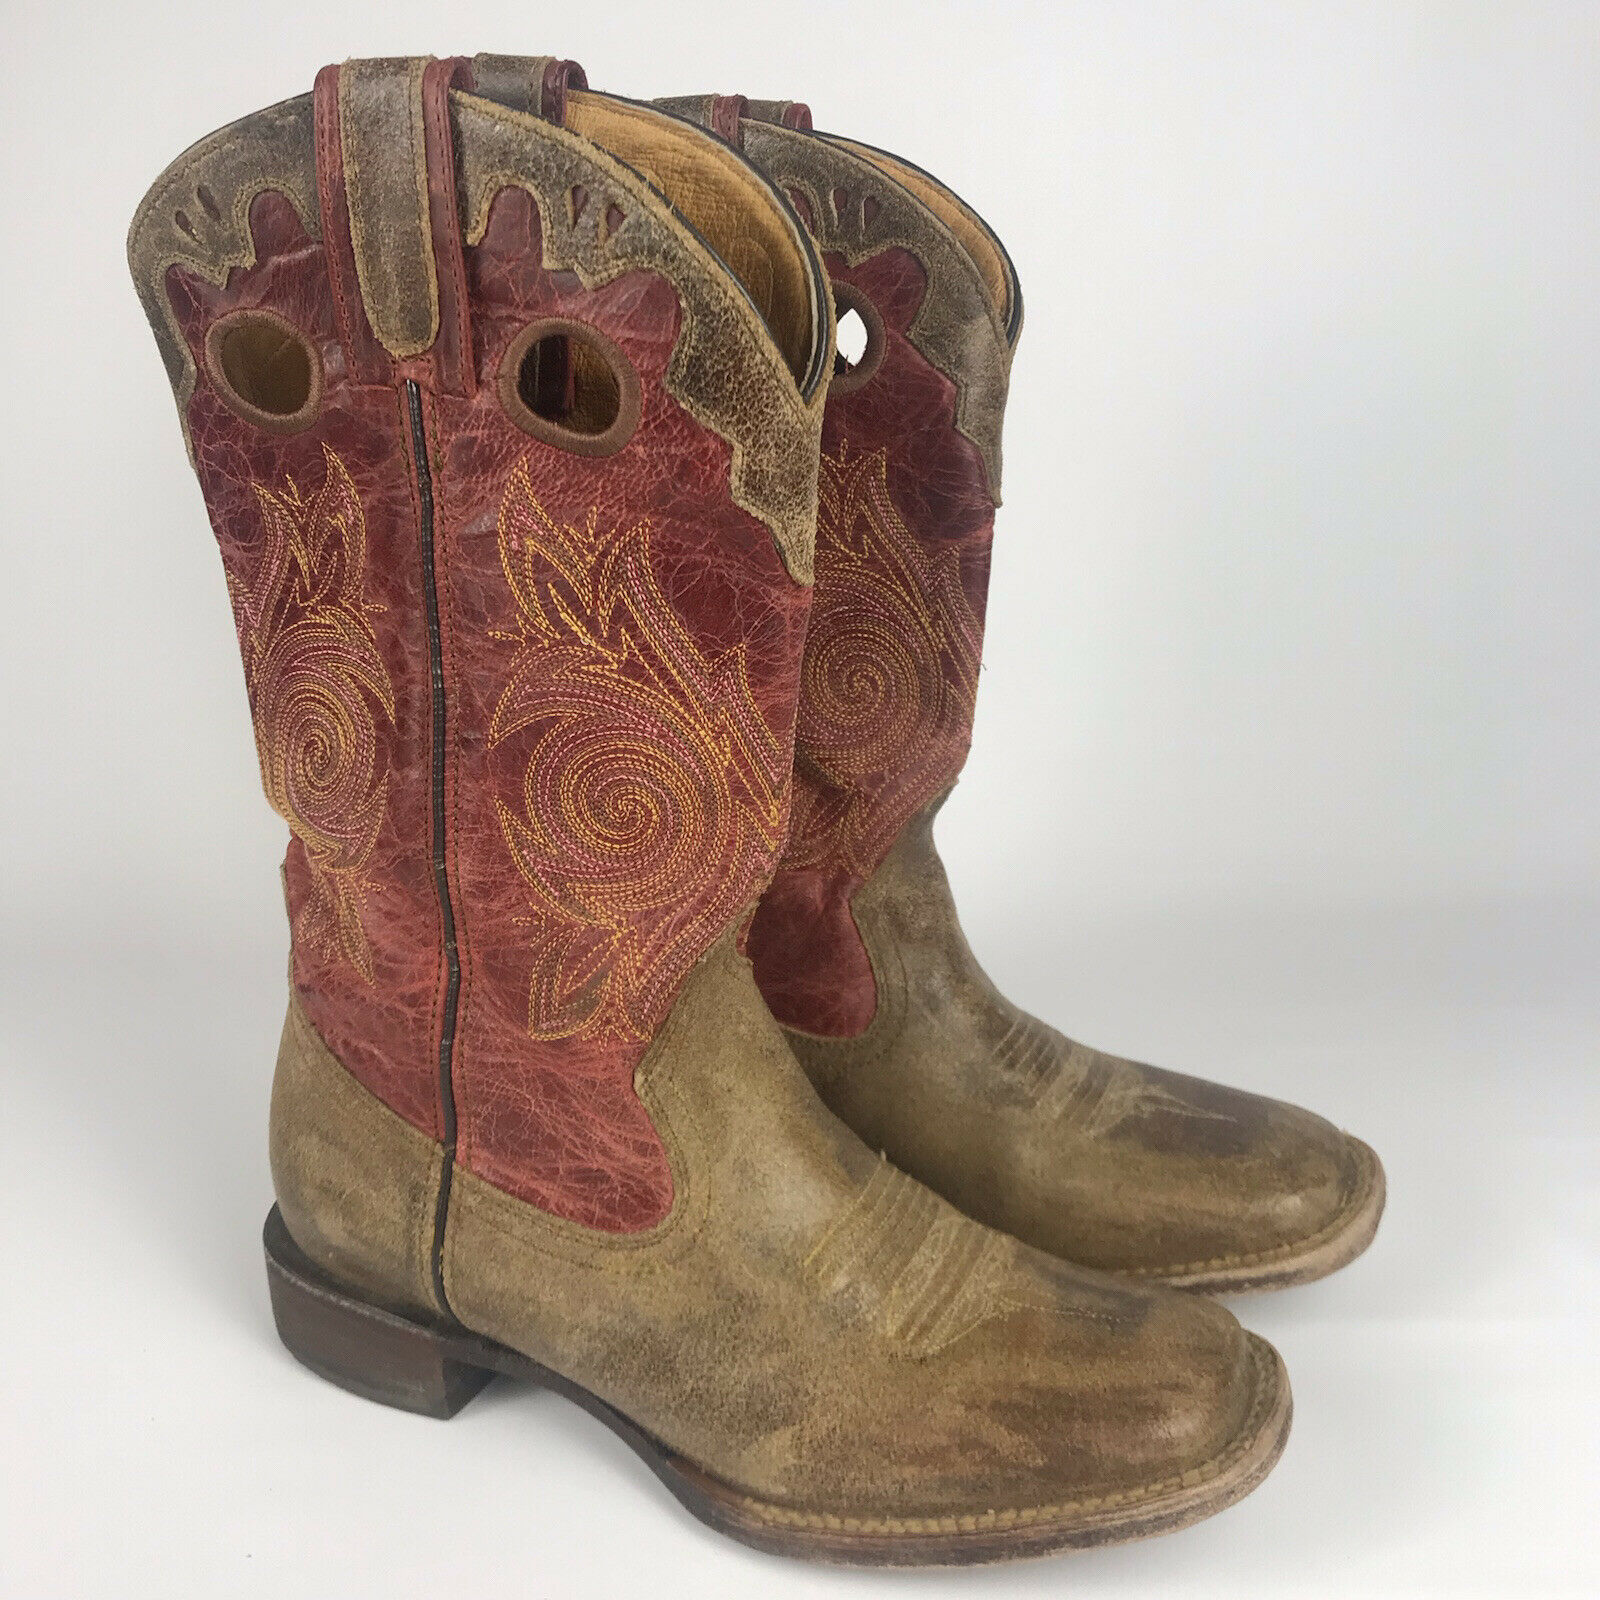 ROCKY Cowboy Boots - Womens 7 - HandHewn Red/Brown Leather Square Toe #5231